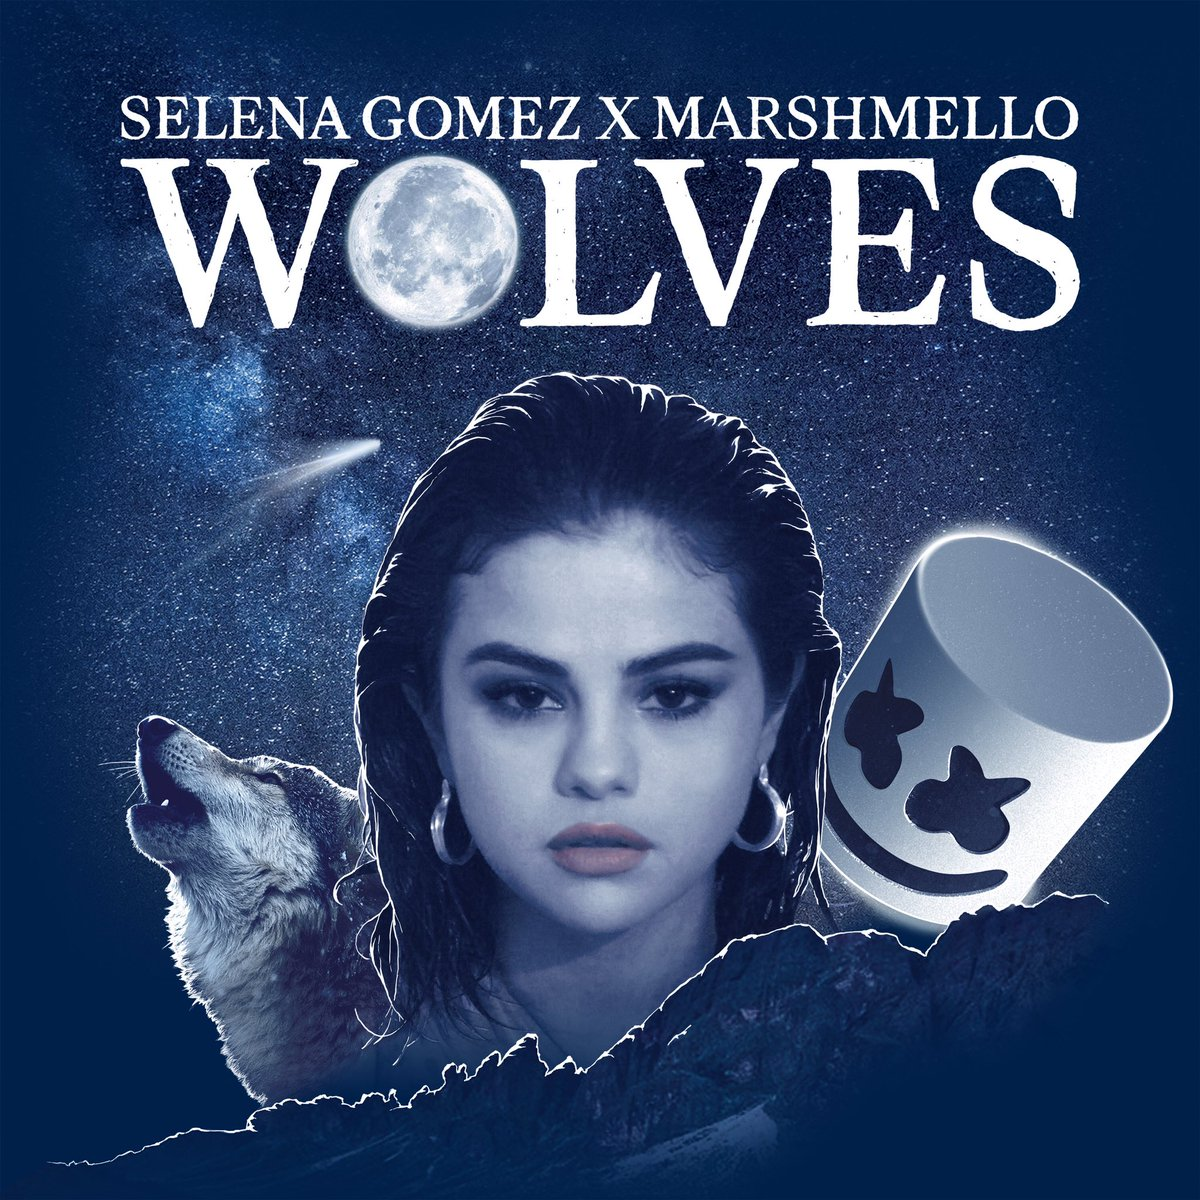 RT @selenagomez: I've been running through the jungle, I've been crying with the wolves. 10.25. https://t.co/ZN9vZTcPnZ